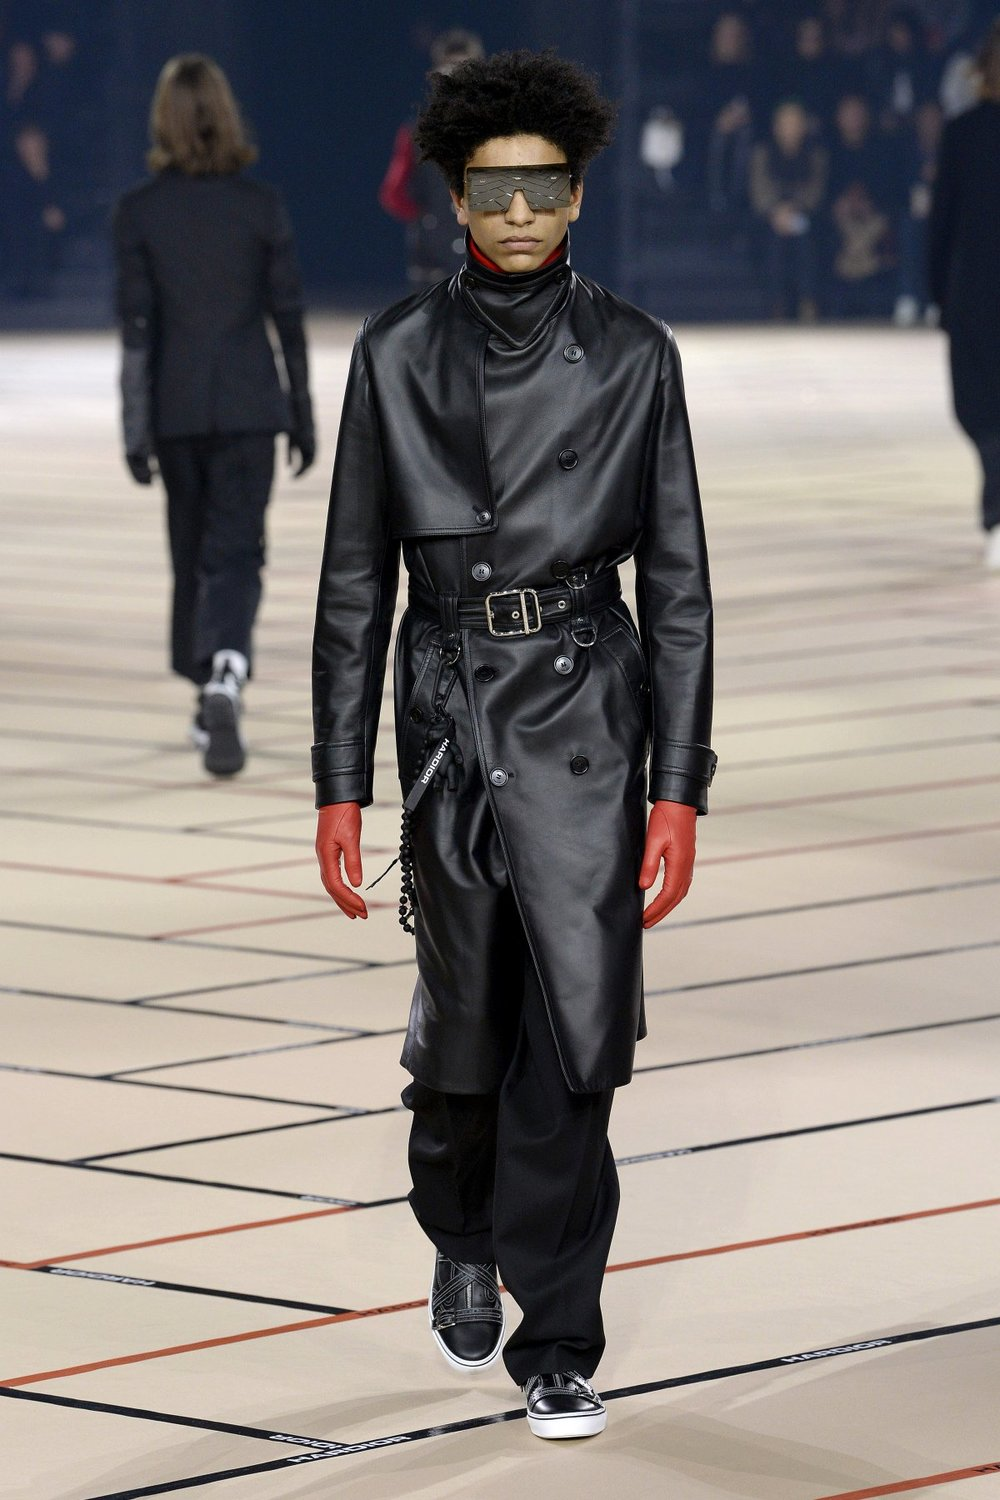 dior_homme_look_9_2017_aw_mens.jpeg